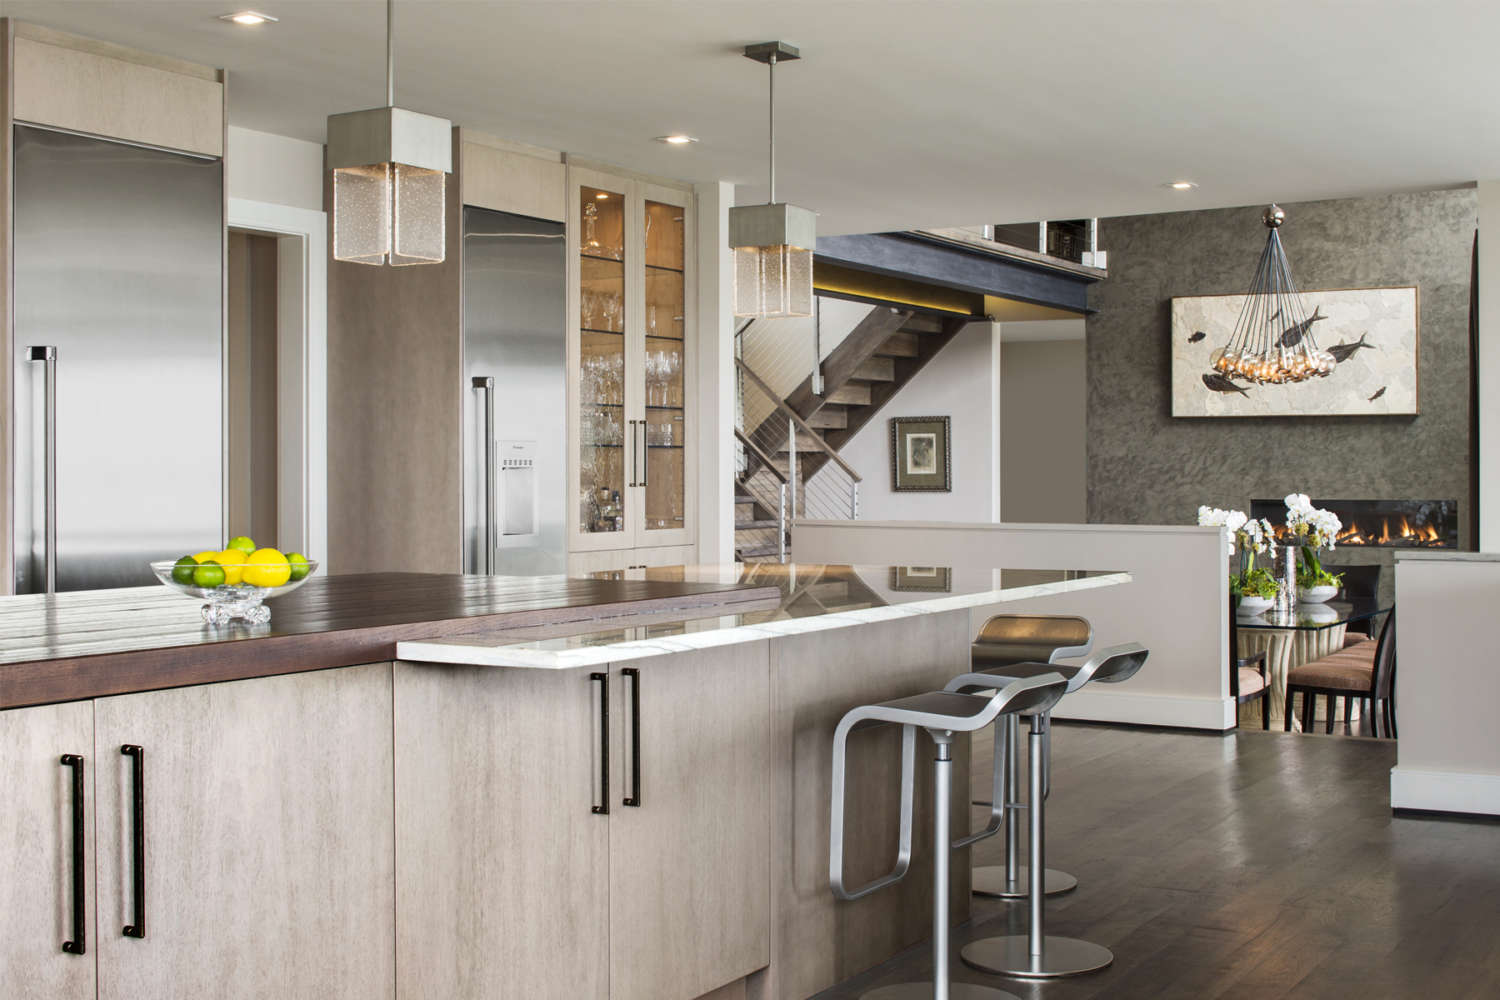 Transitional kitchen with flat panel, framelss, fully custom Bilotta Cabinetry in mahogany opens up into adjacent sunken livingroom. Open staircase features airplane wire. Kitchen island has seating and polished marble countertop. Design by Randy O'Kane, CKD, of Bilotta Kitchens.